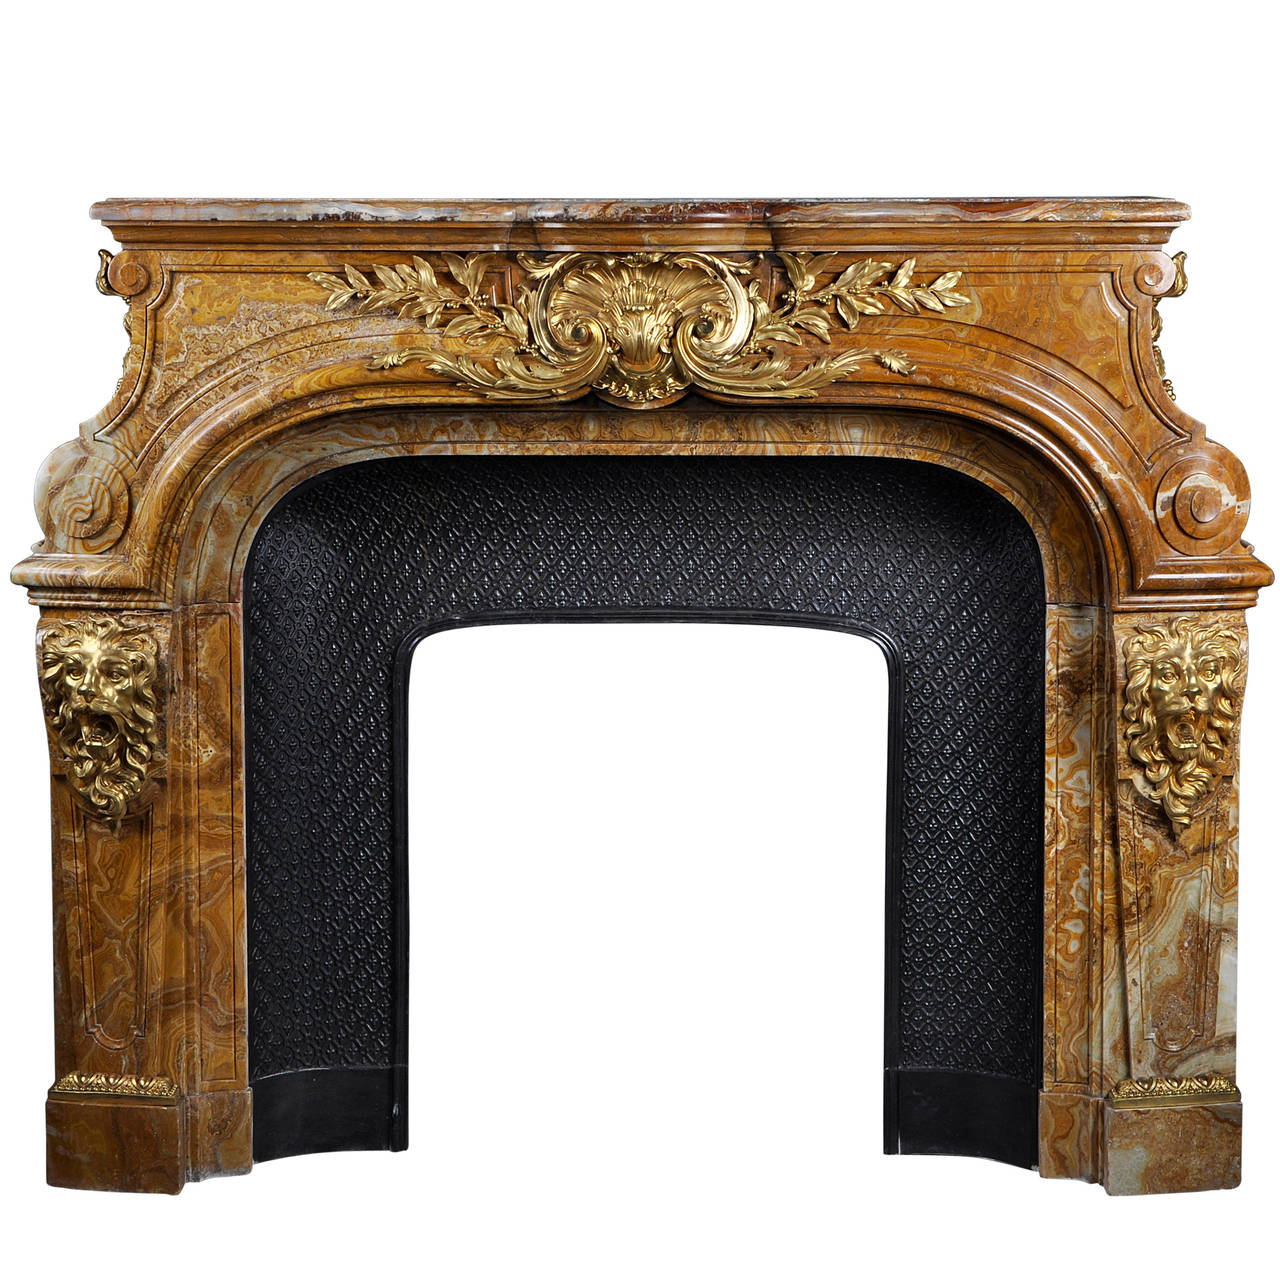 Louis XIV Style Fireplace in Alabastro di Busca with Gilded Bronze 1